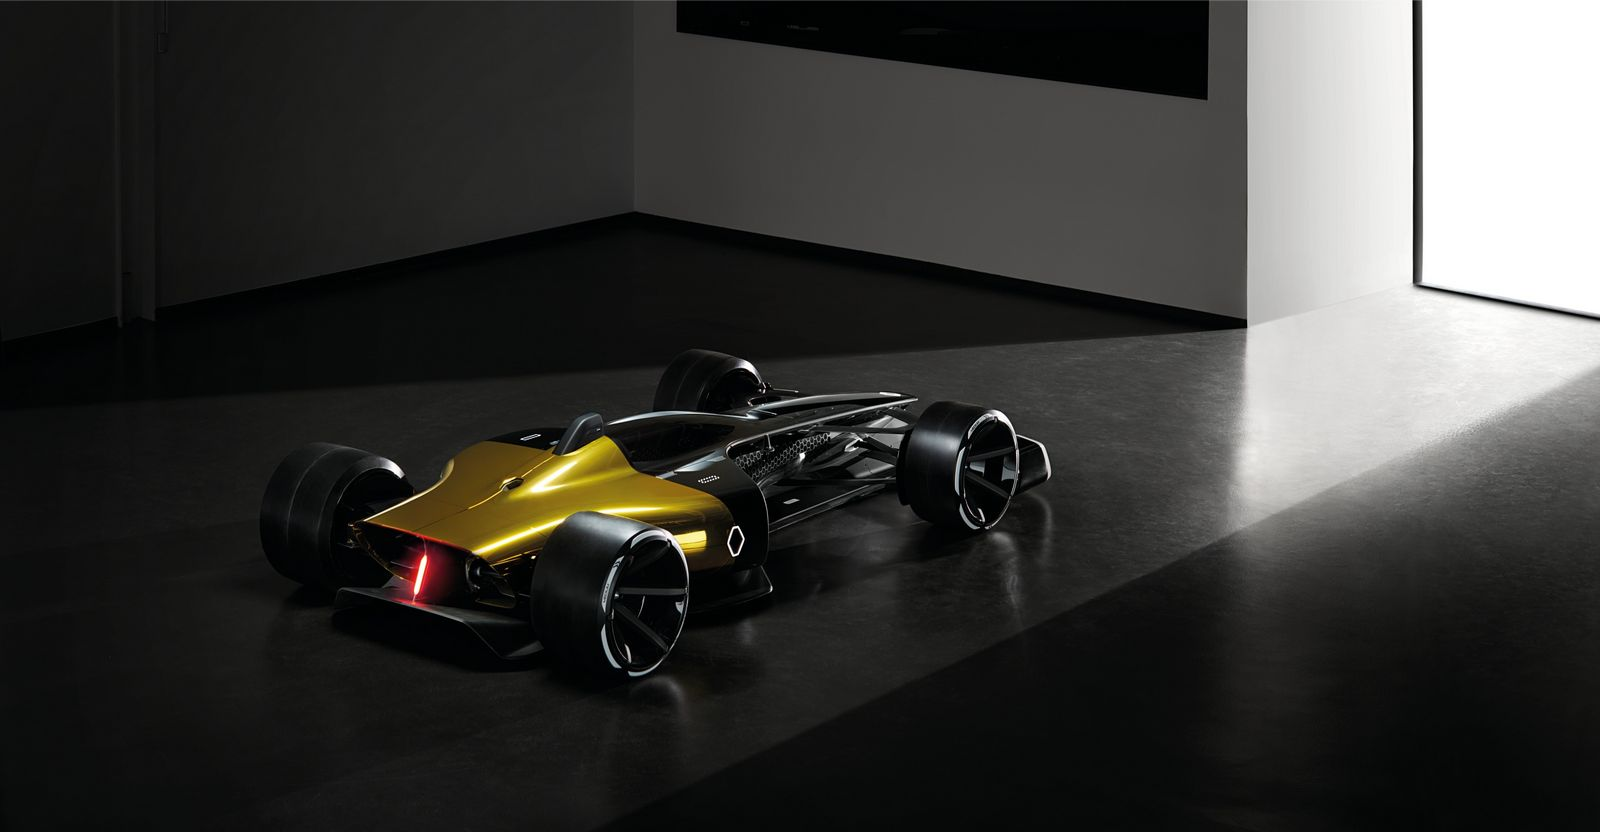 Renault RS 2027 Vision concept (7)